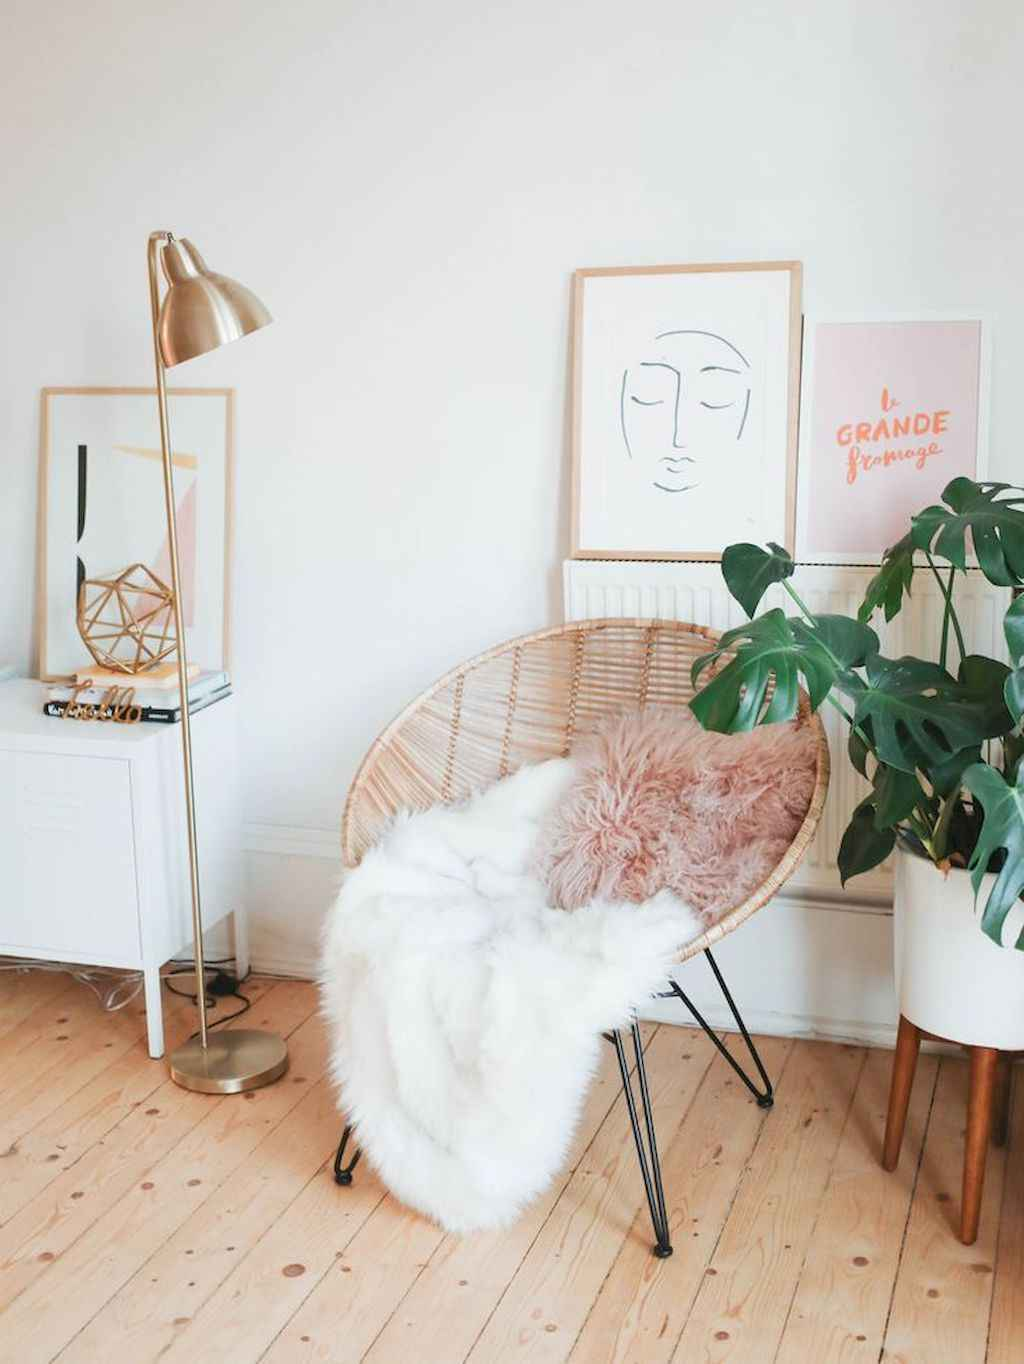 Cozy apartment decorating ideas on a budget (9)